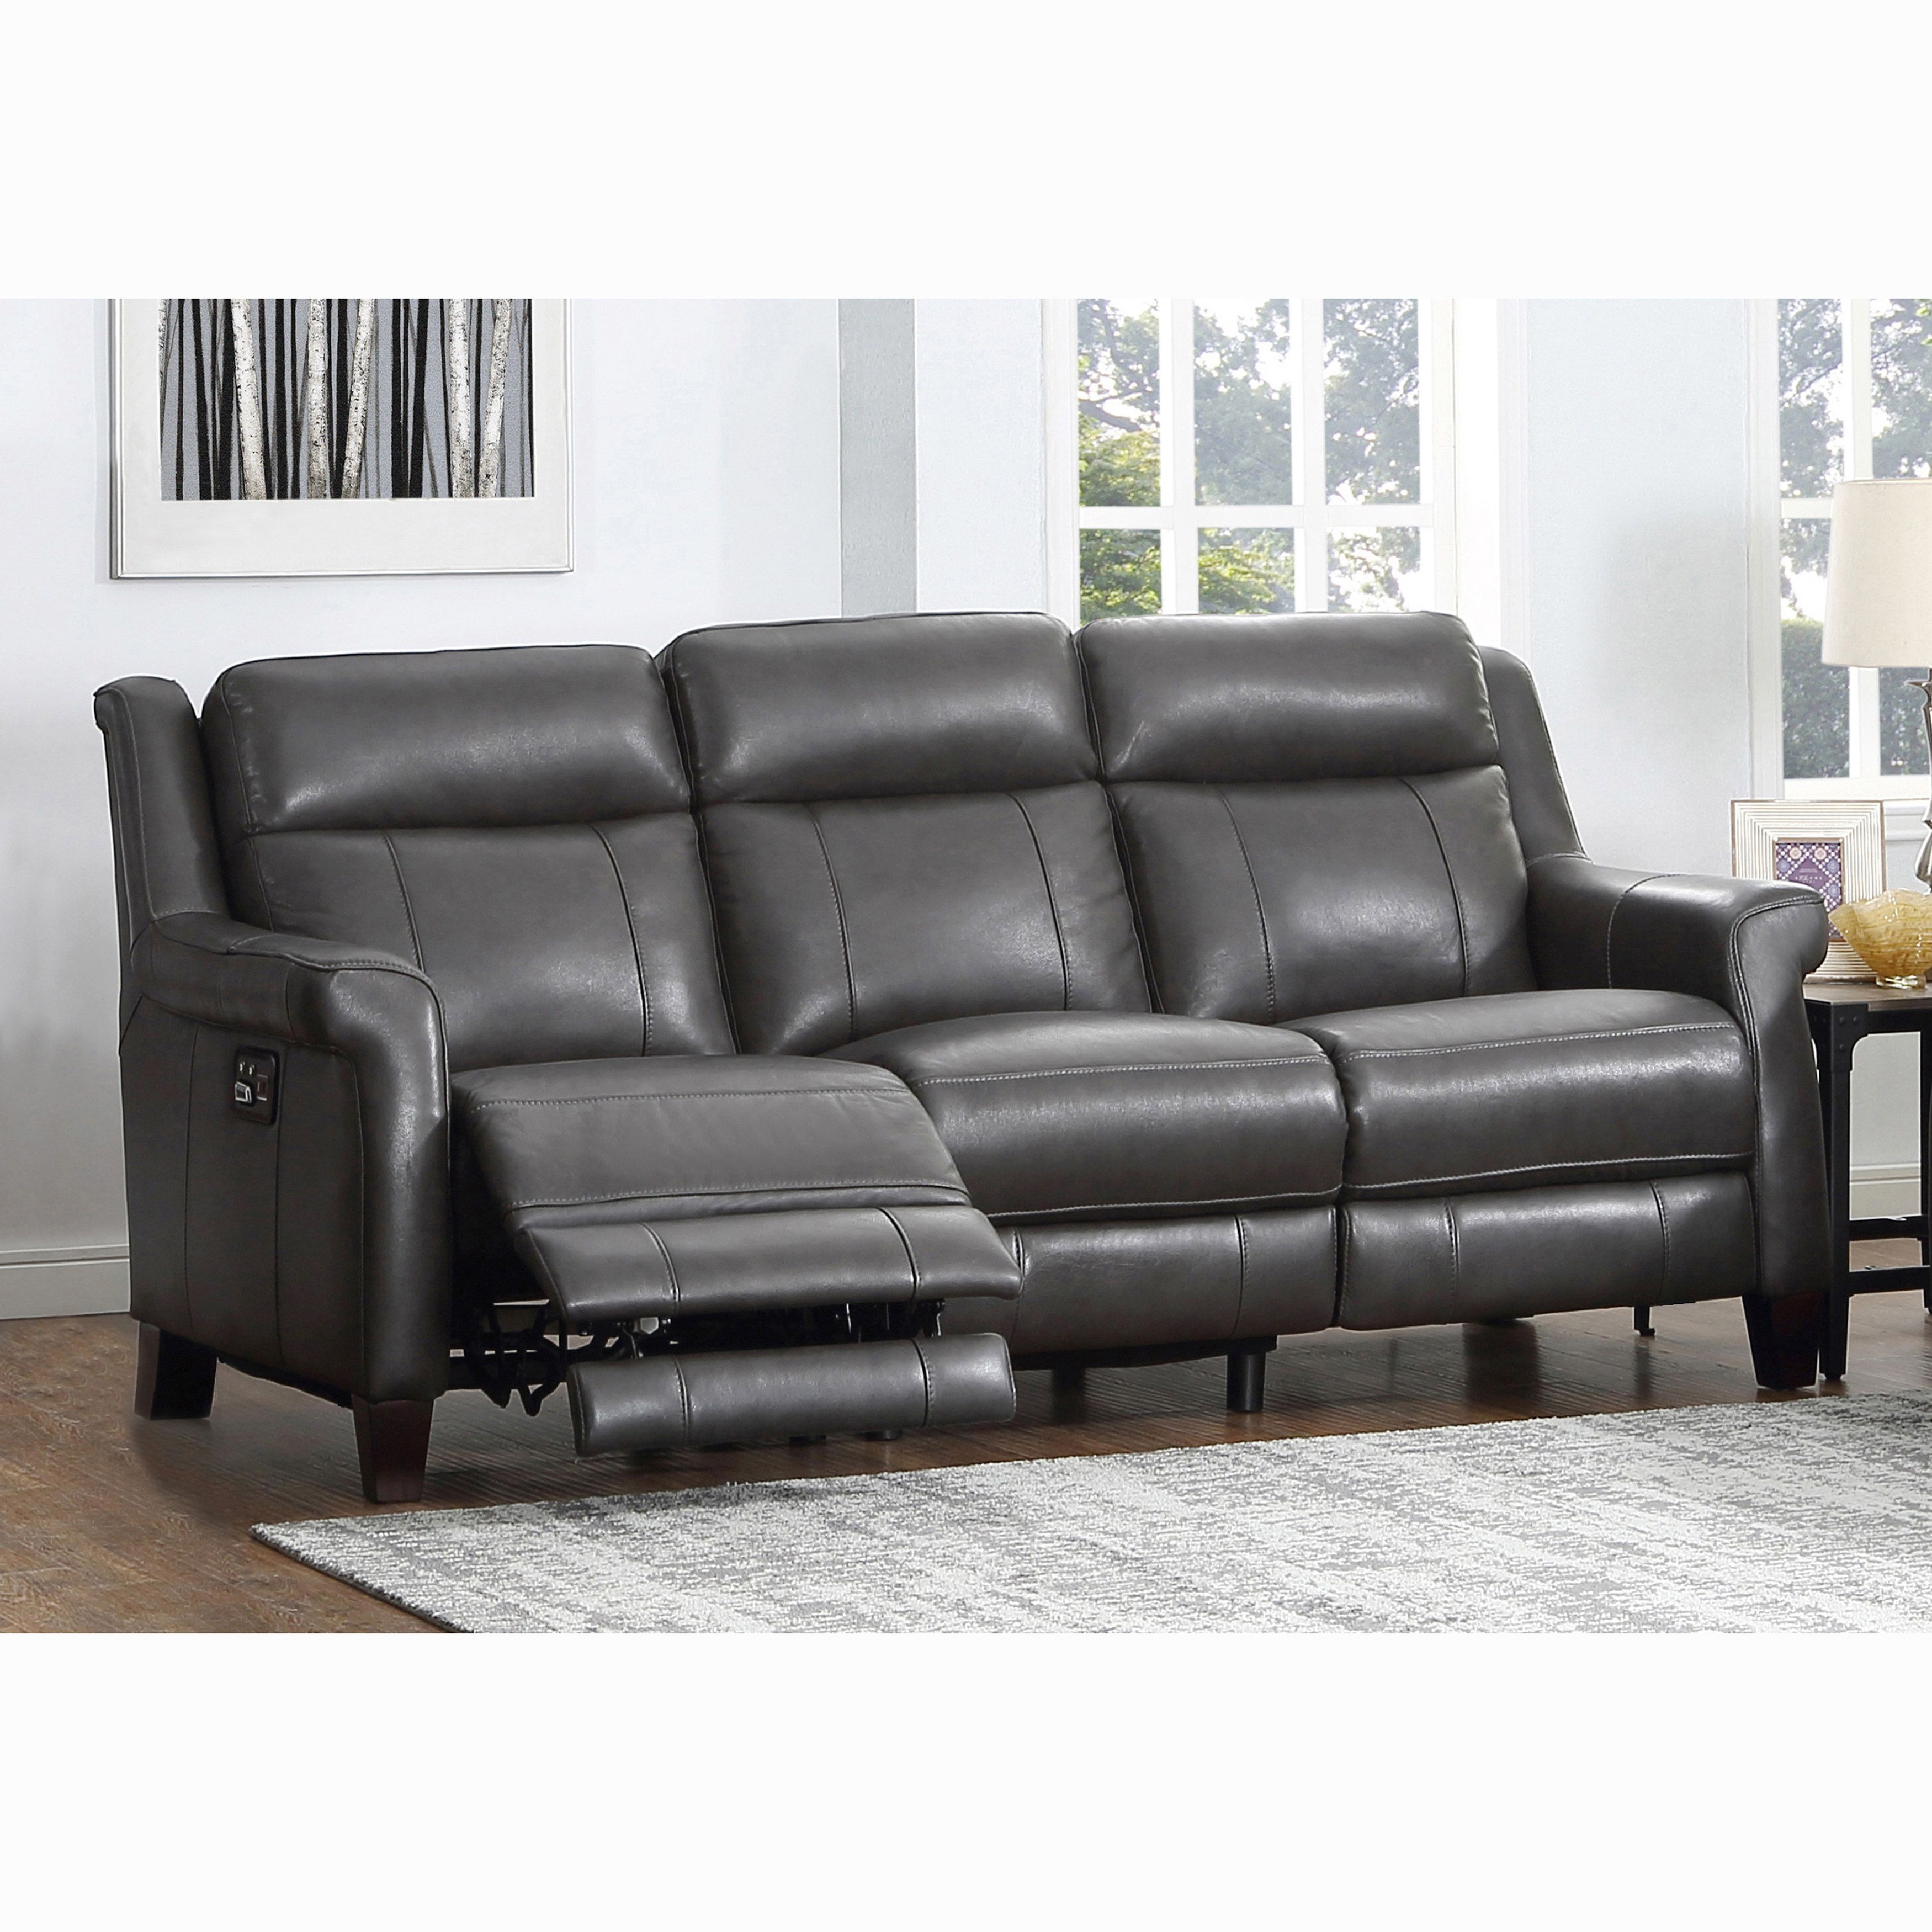 Alex Grey Top Grain Leather Power Reclining Sofa with Power